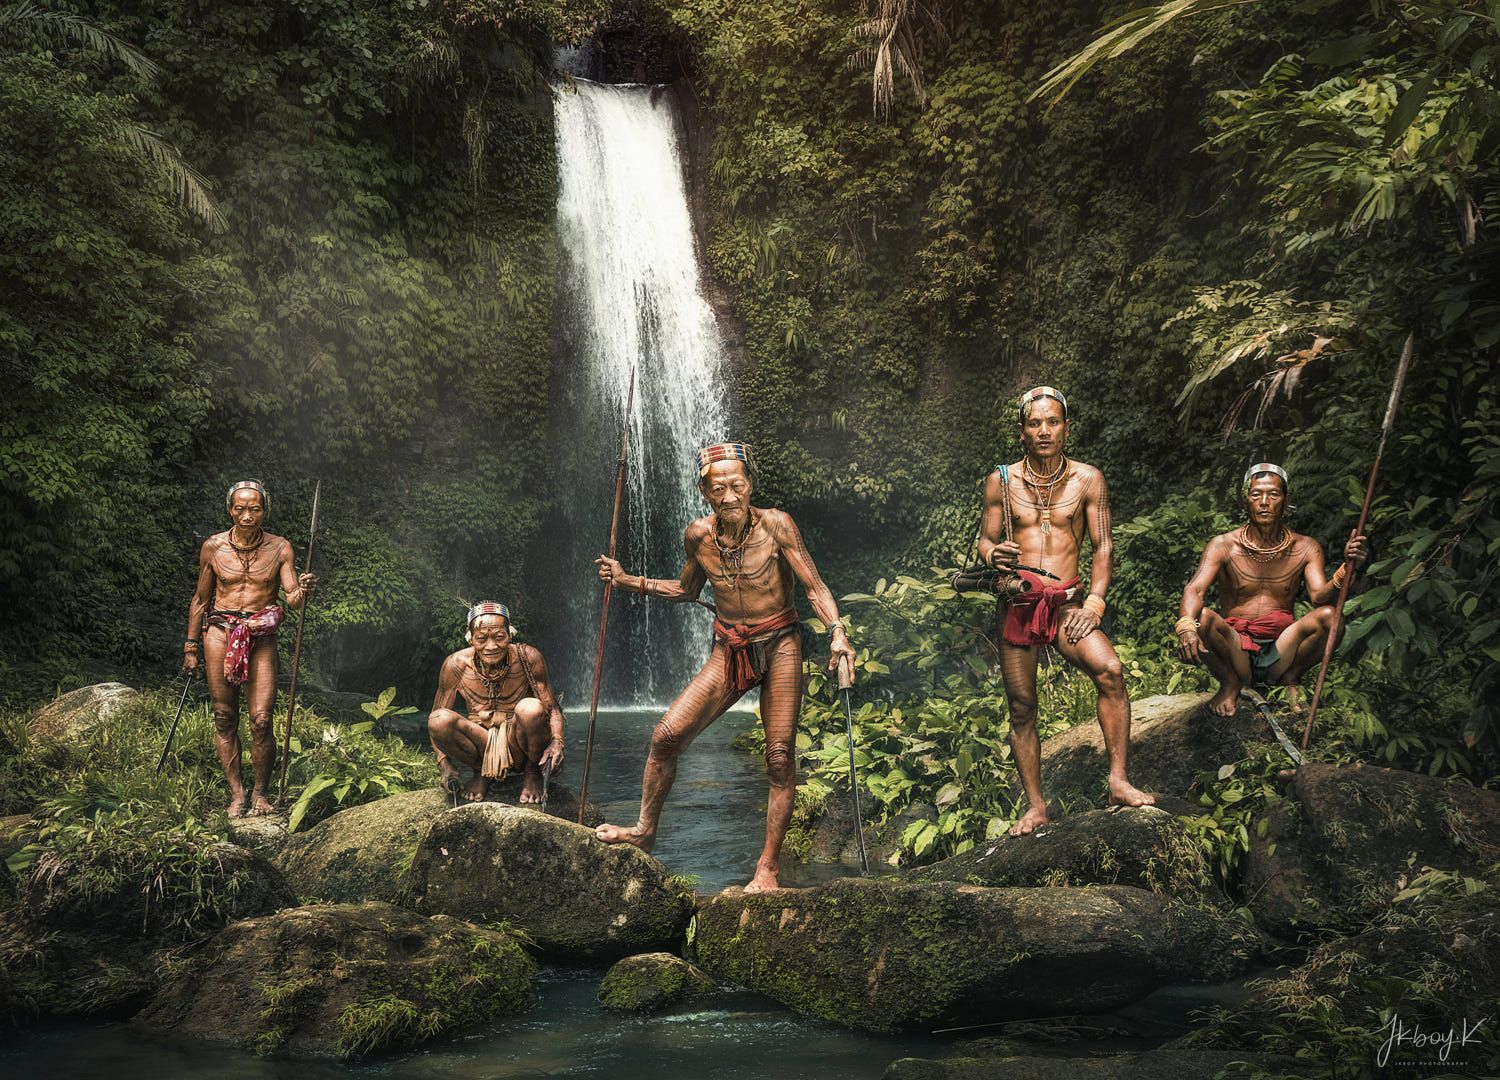 travel photography forest keepers by jkboy jatenipat